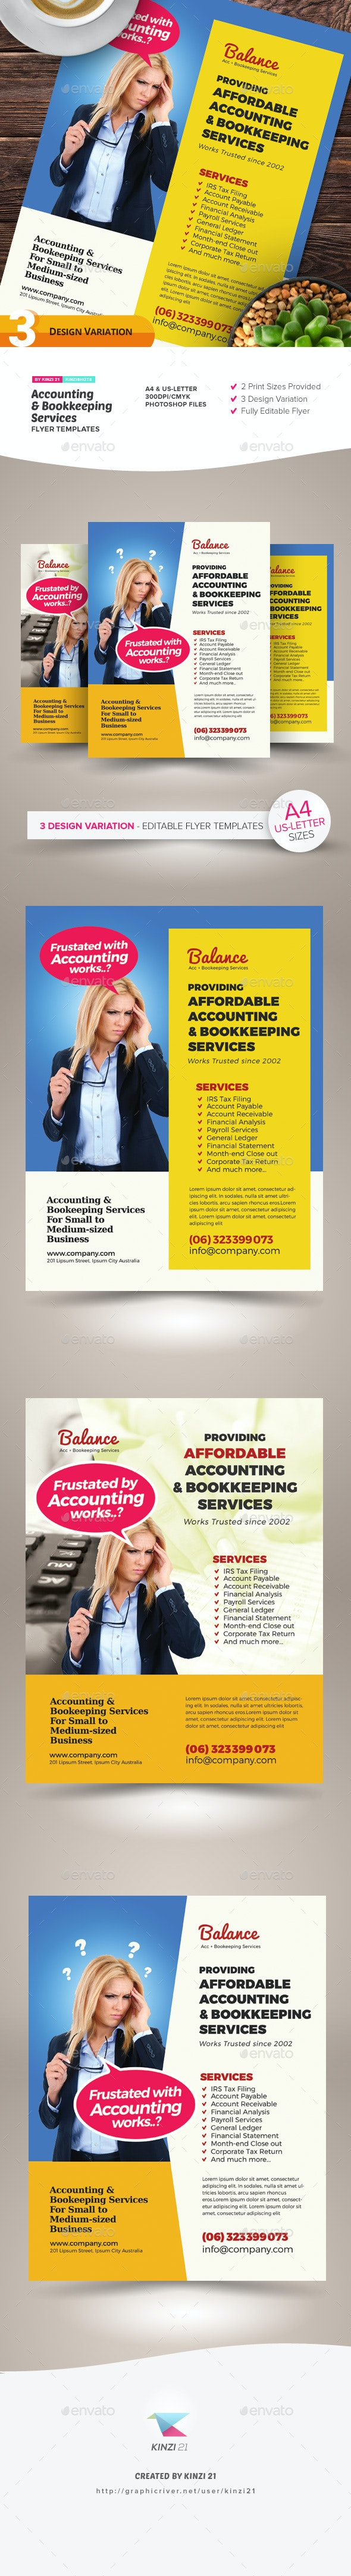 Accounting & Bookkeeping Services Flyers - Corporate Flyers